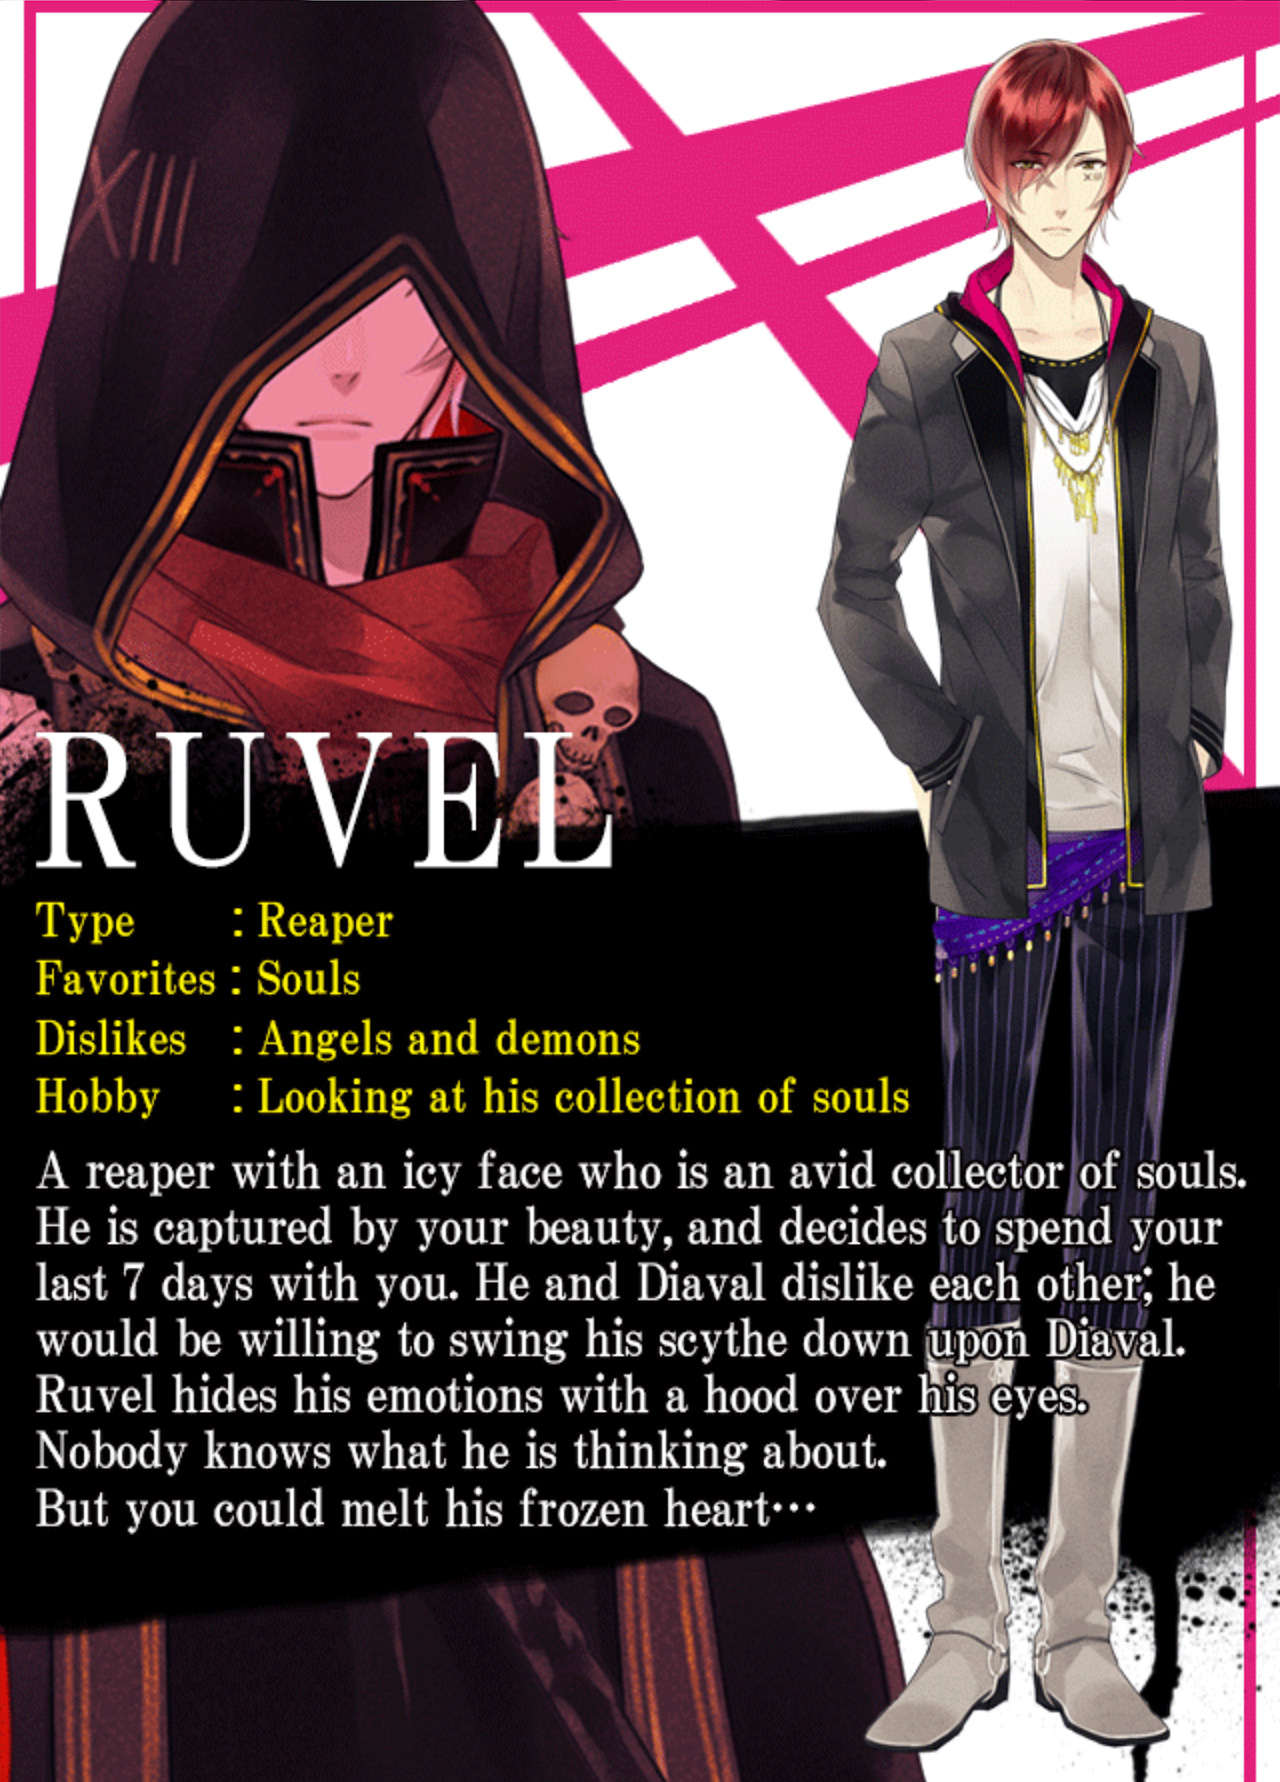 Ruvel Image